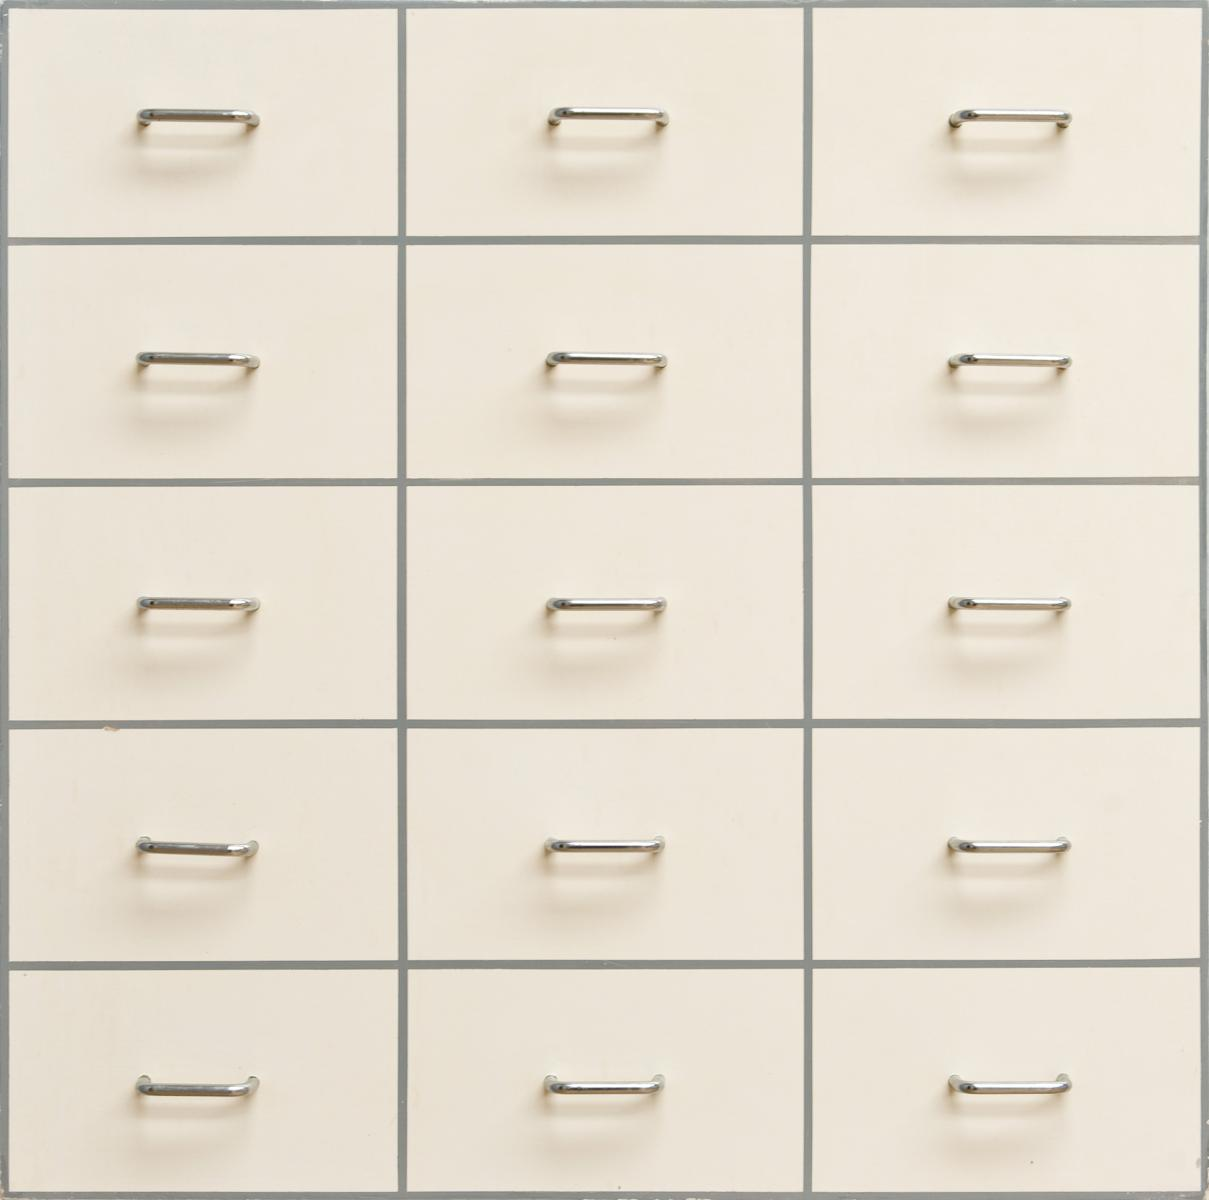 William Tillyer, Fifteen Drawer Pulls, 1966, Oil on panel construction, 88.9 x 88.9 cms (35 x 35 ins)